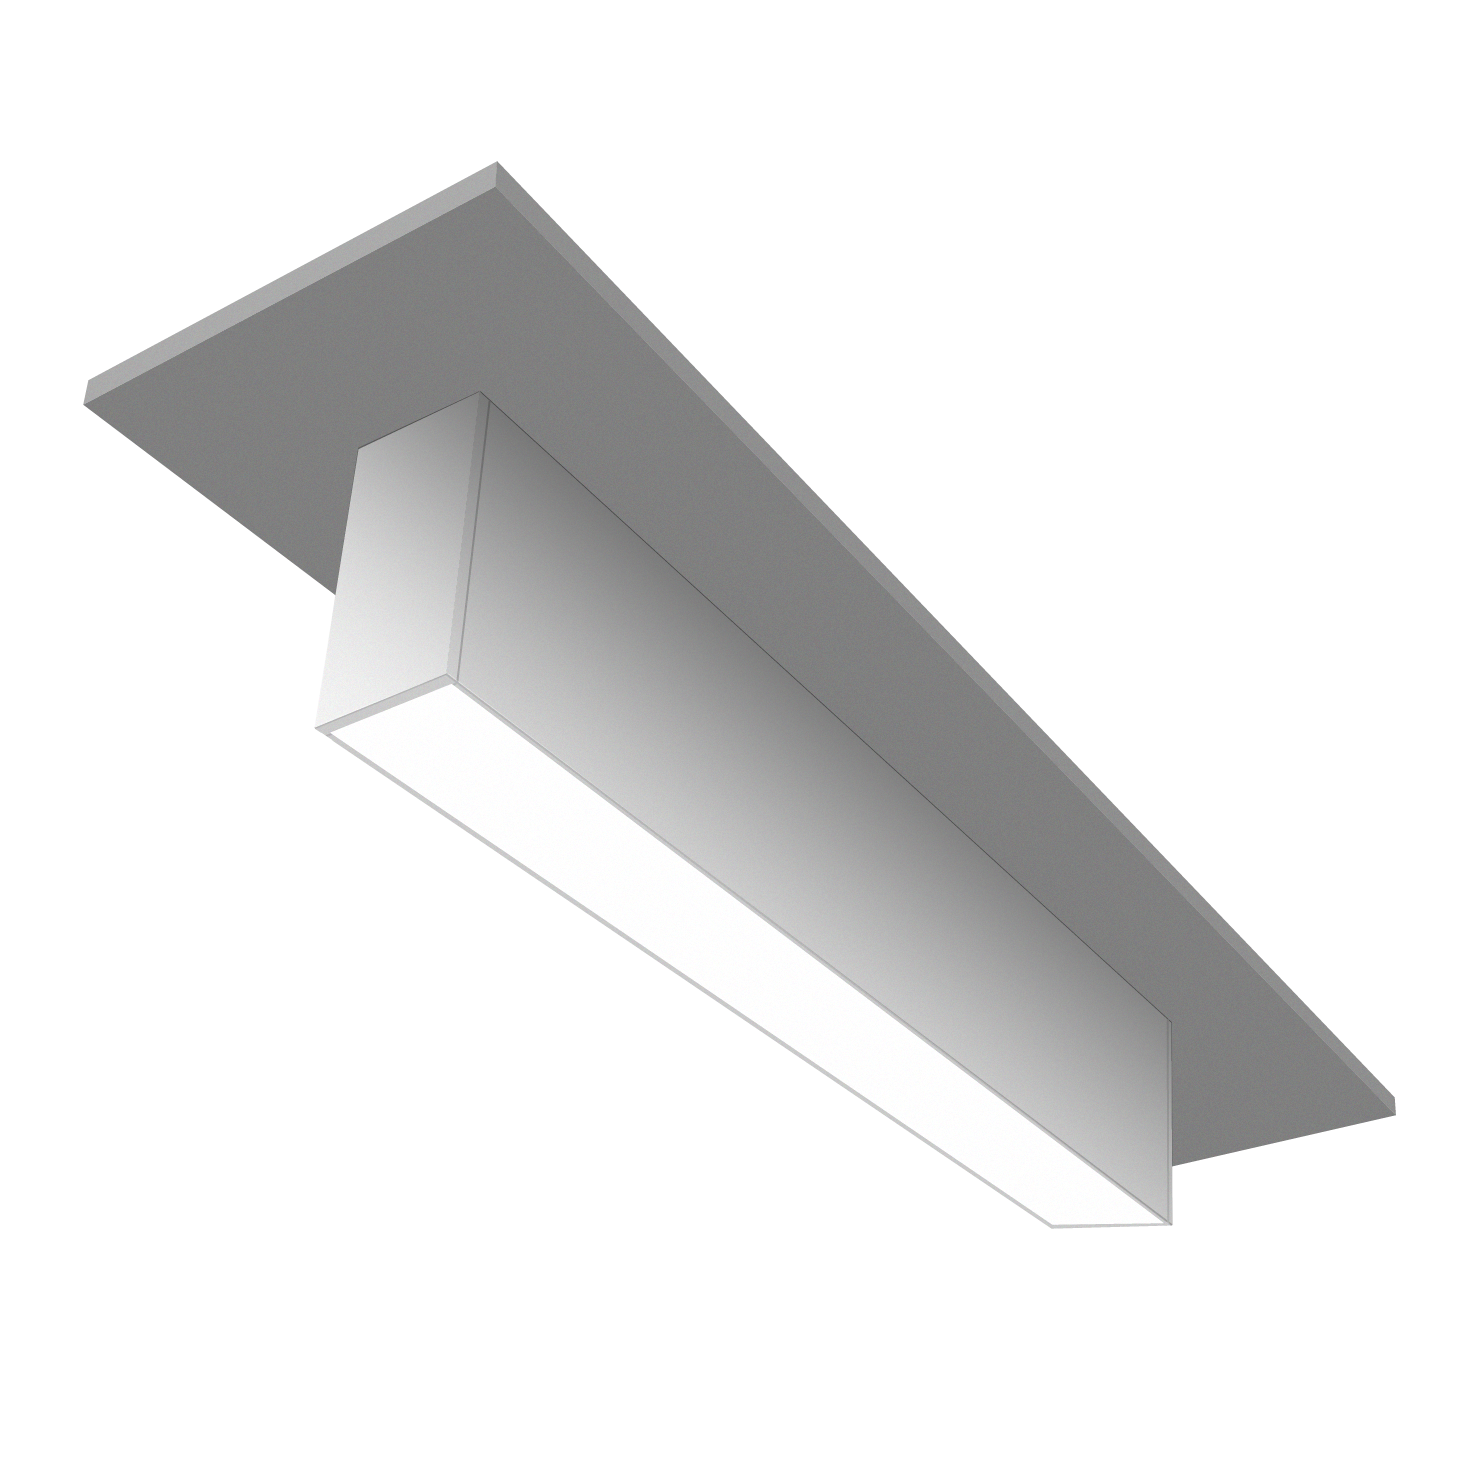 Alcon Lighting 14071 2 Illumine Architectural 5 Channel Color Tuning Led Foot Linear Surface Mount Direct Light Fixture